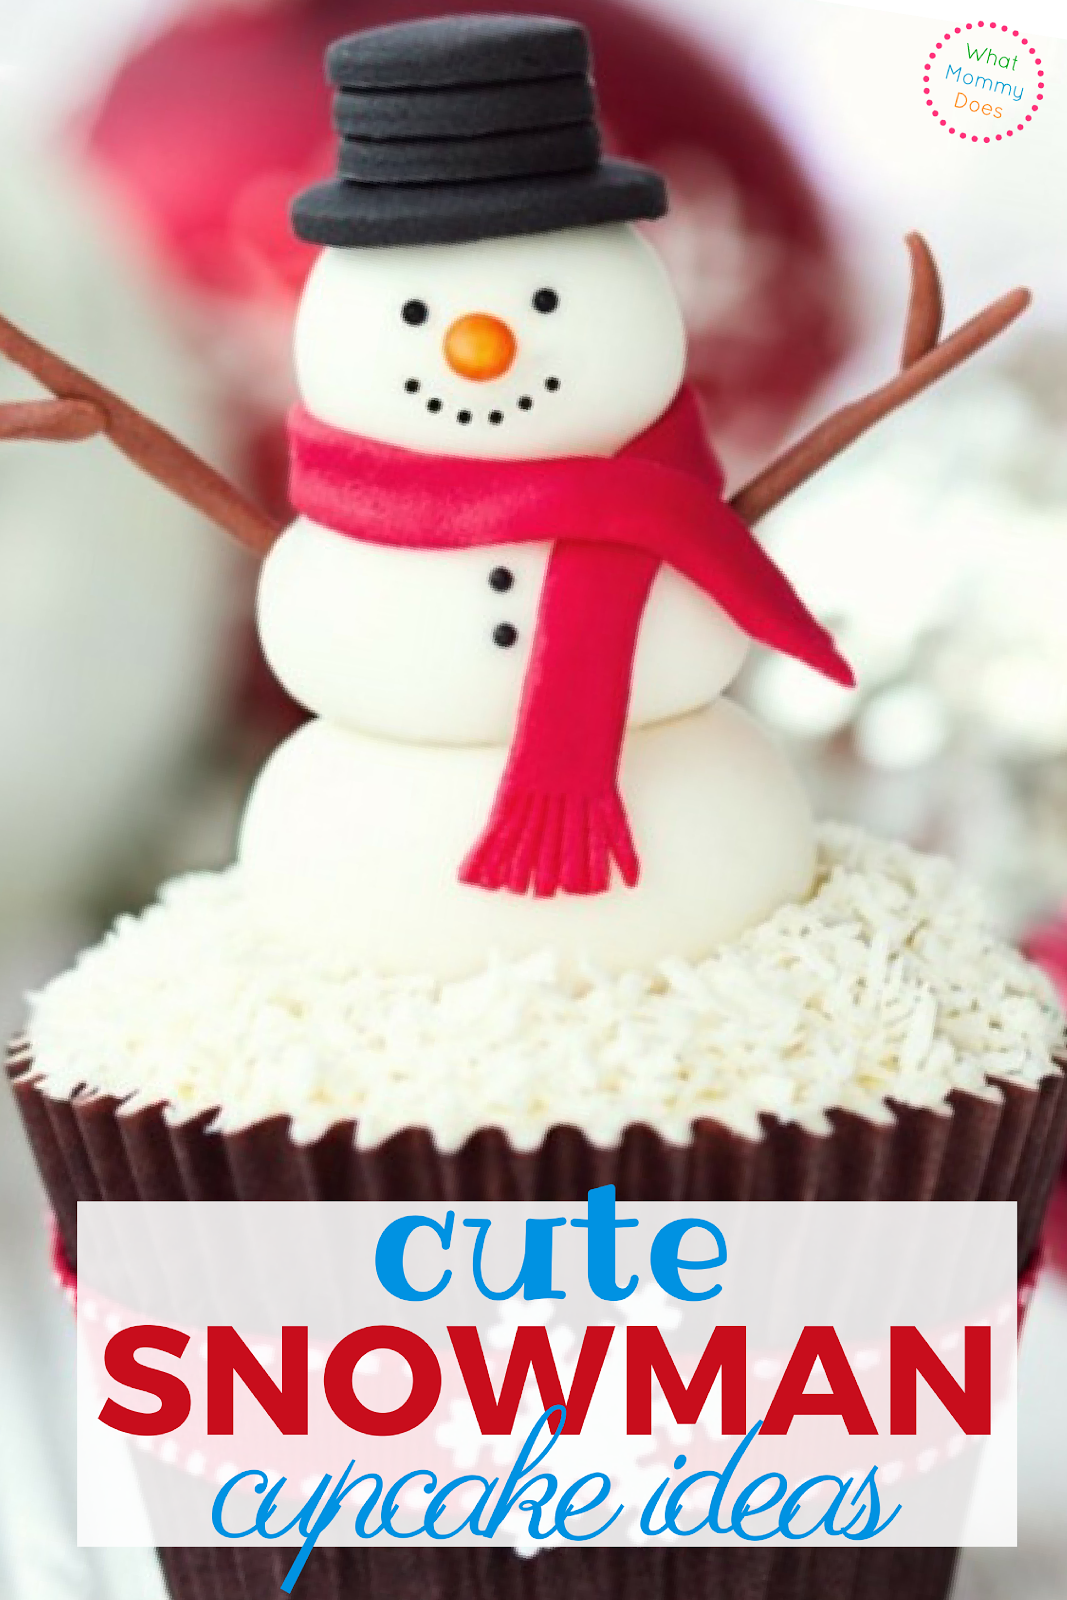 Cute Snowman Cupcake Ideas - These adorable snowman treats are perfect for winter or the holidays! I love cute cupcakes like these!!